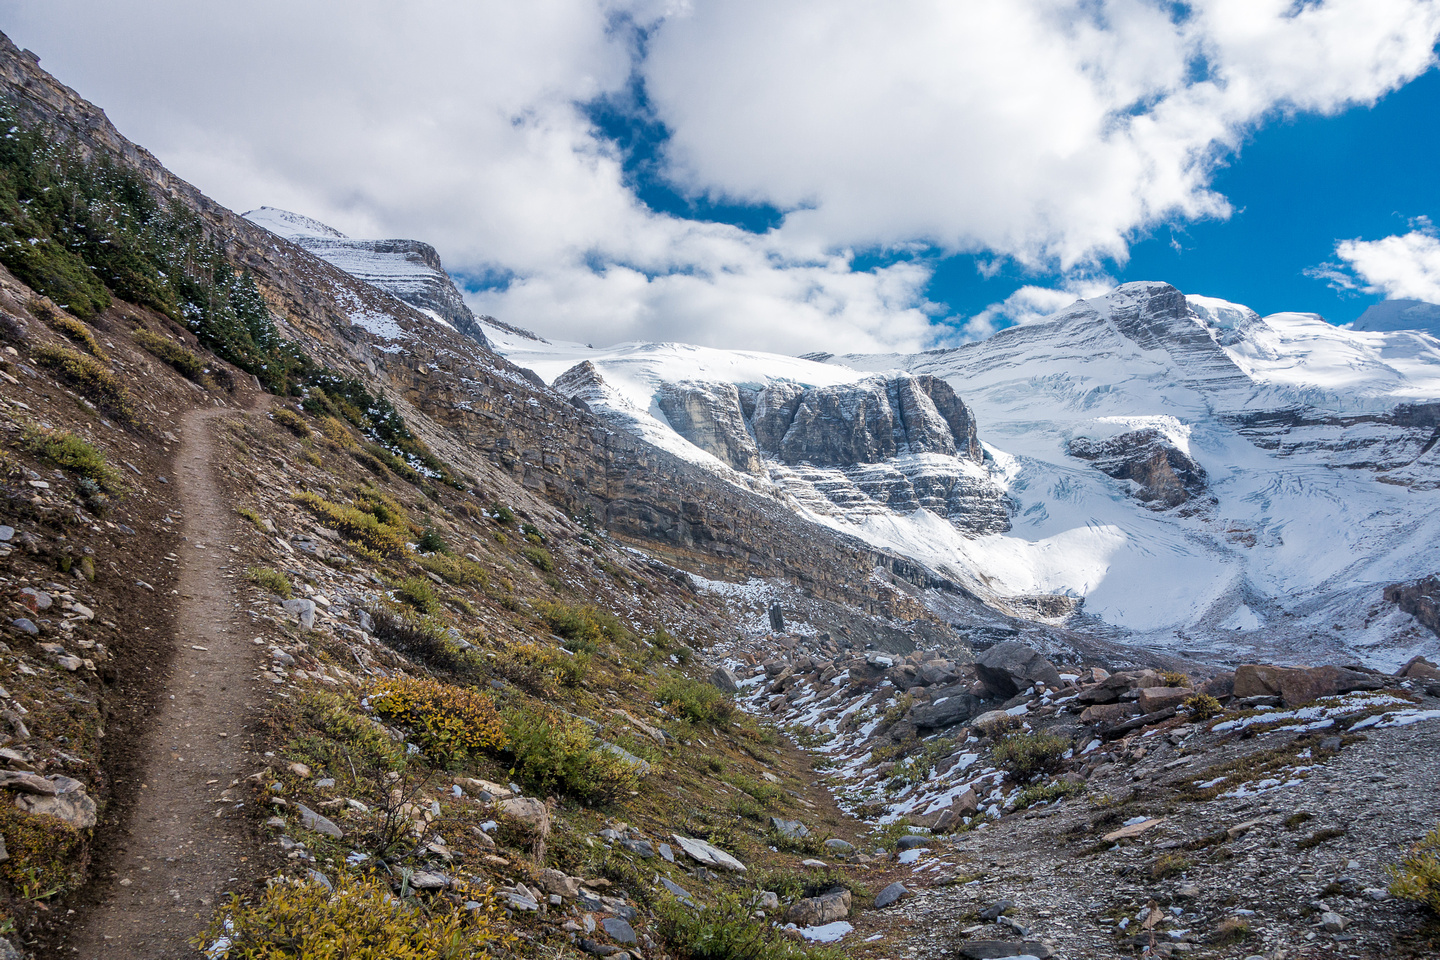 The trail is obvious and easy to hike on - this is descending the moraine on my way back to camp.